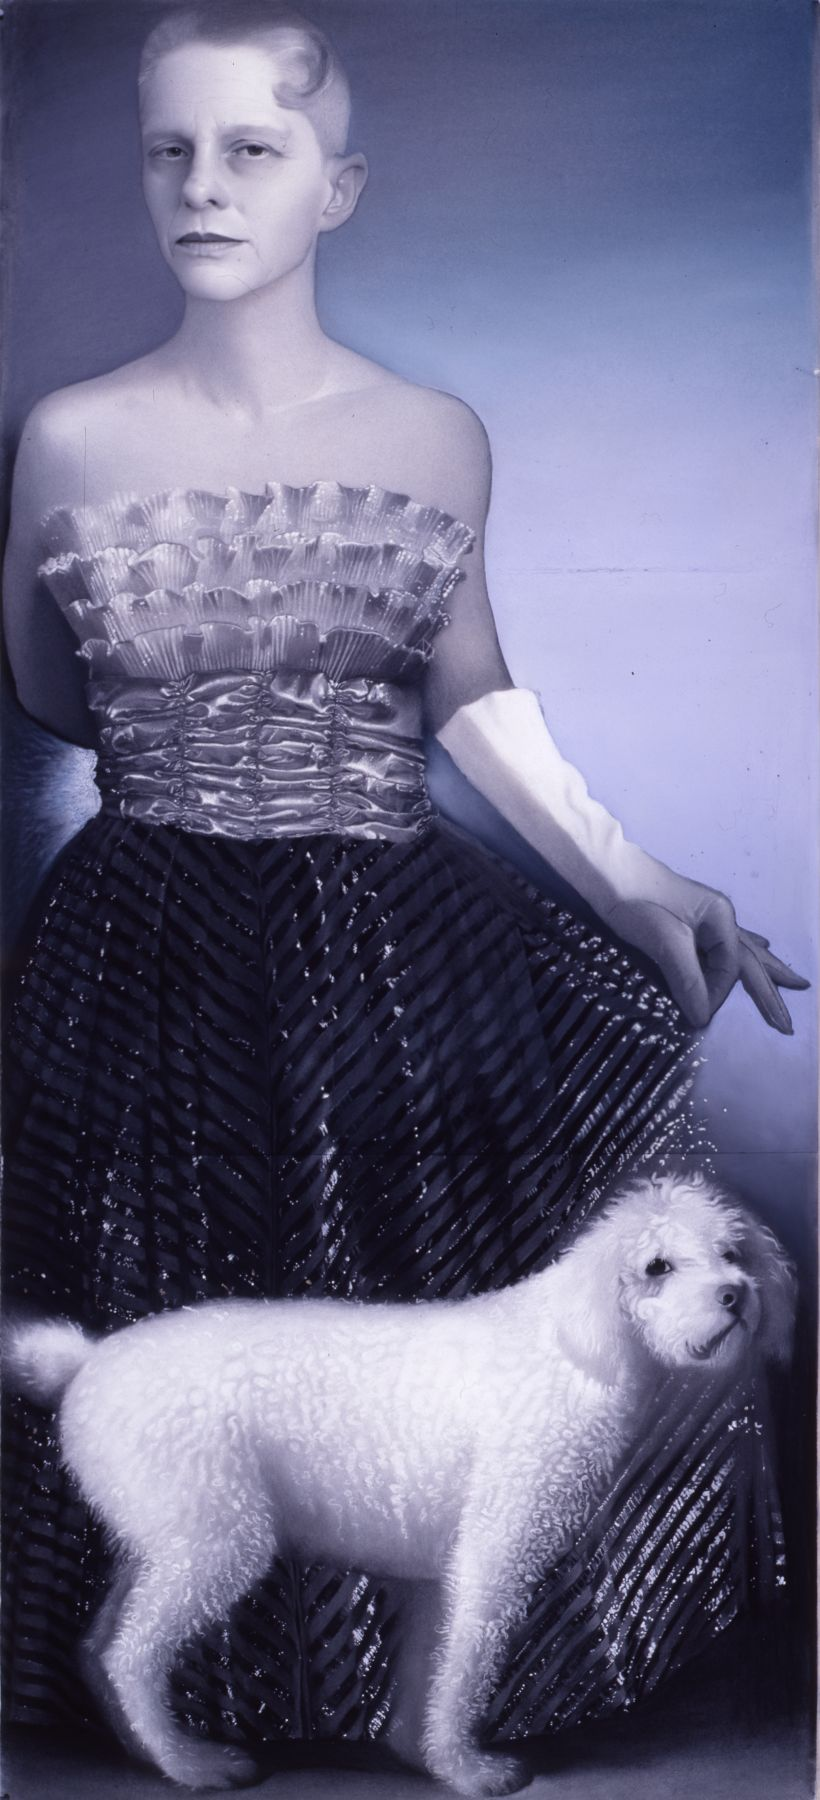 susan hauptman, Self Portrait with Dog, 2001, charcoal, pastel and hair on paper, 94 x 40 1/2 inches